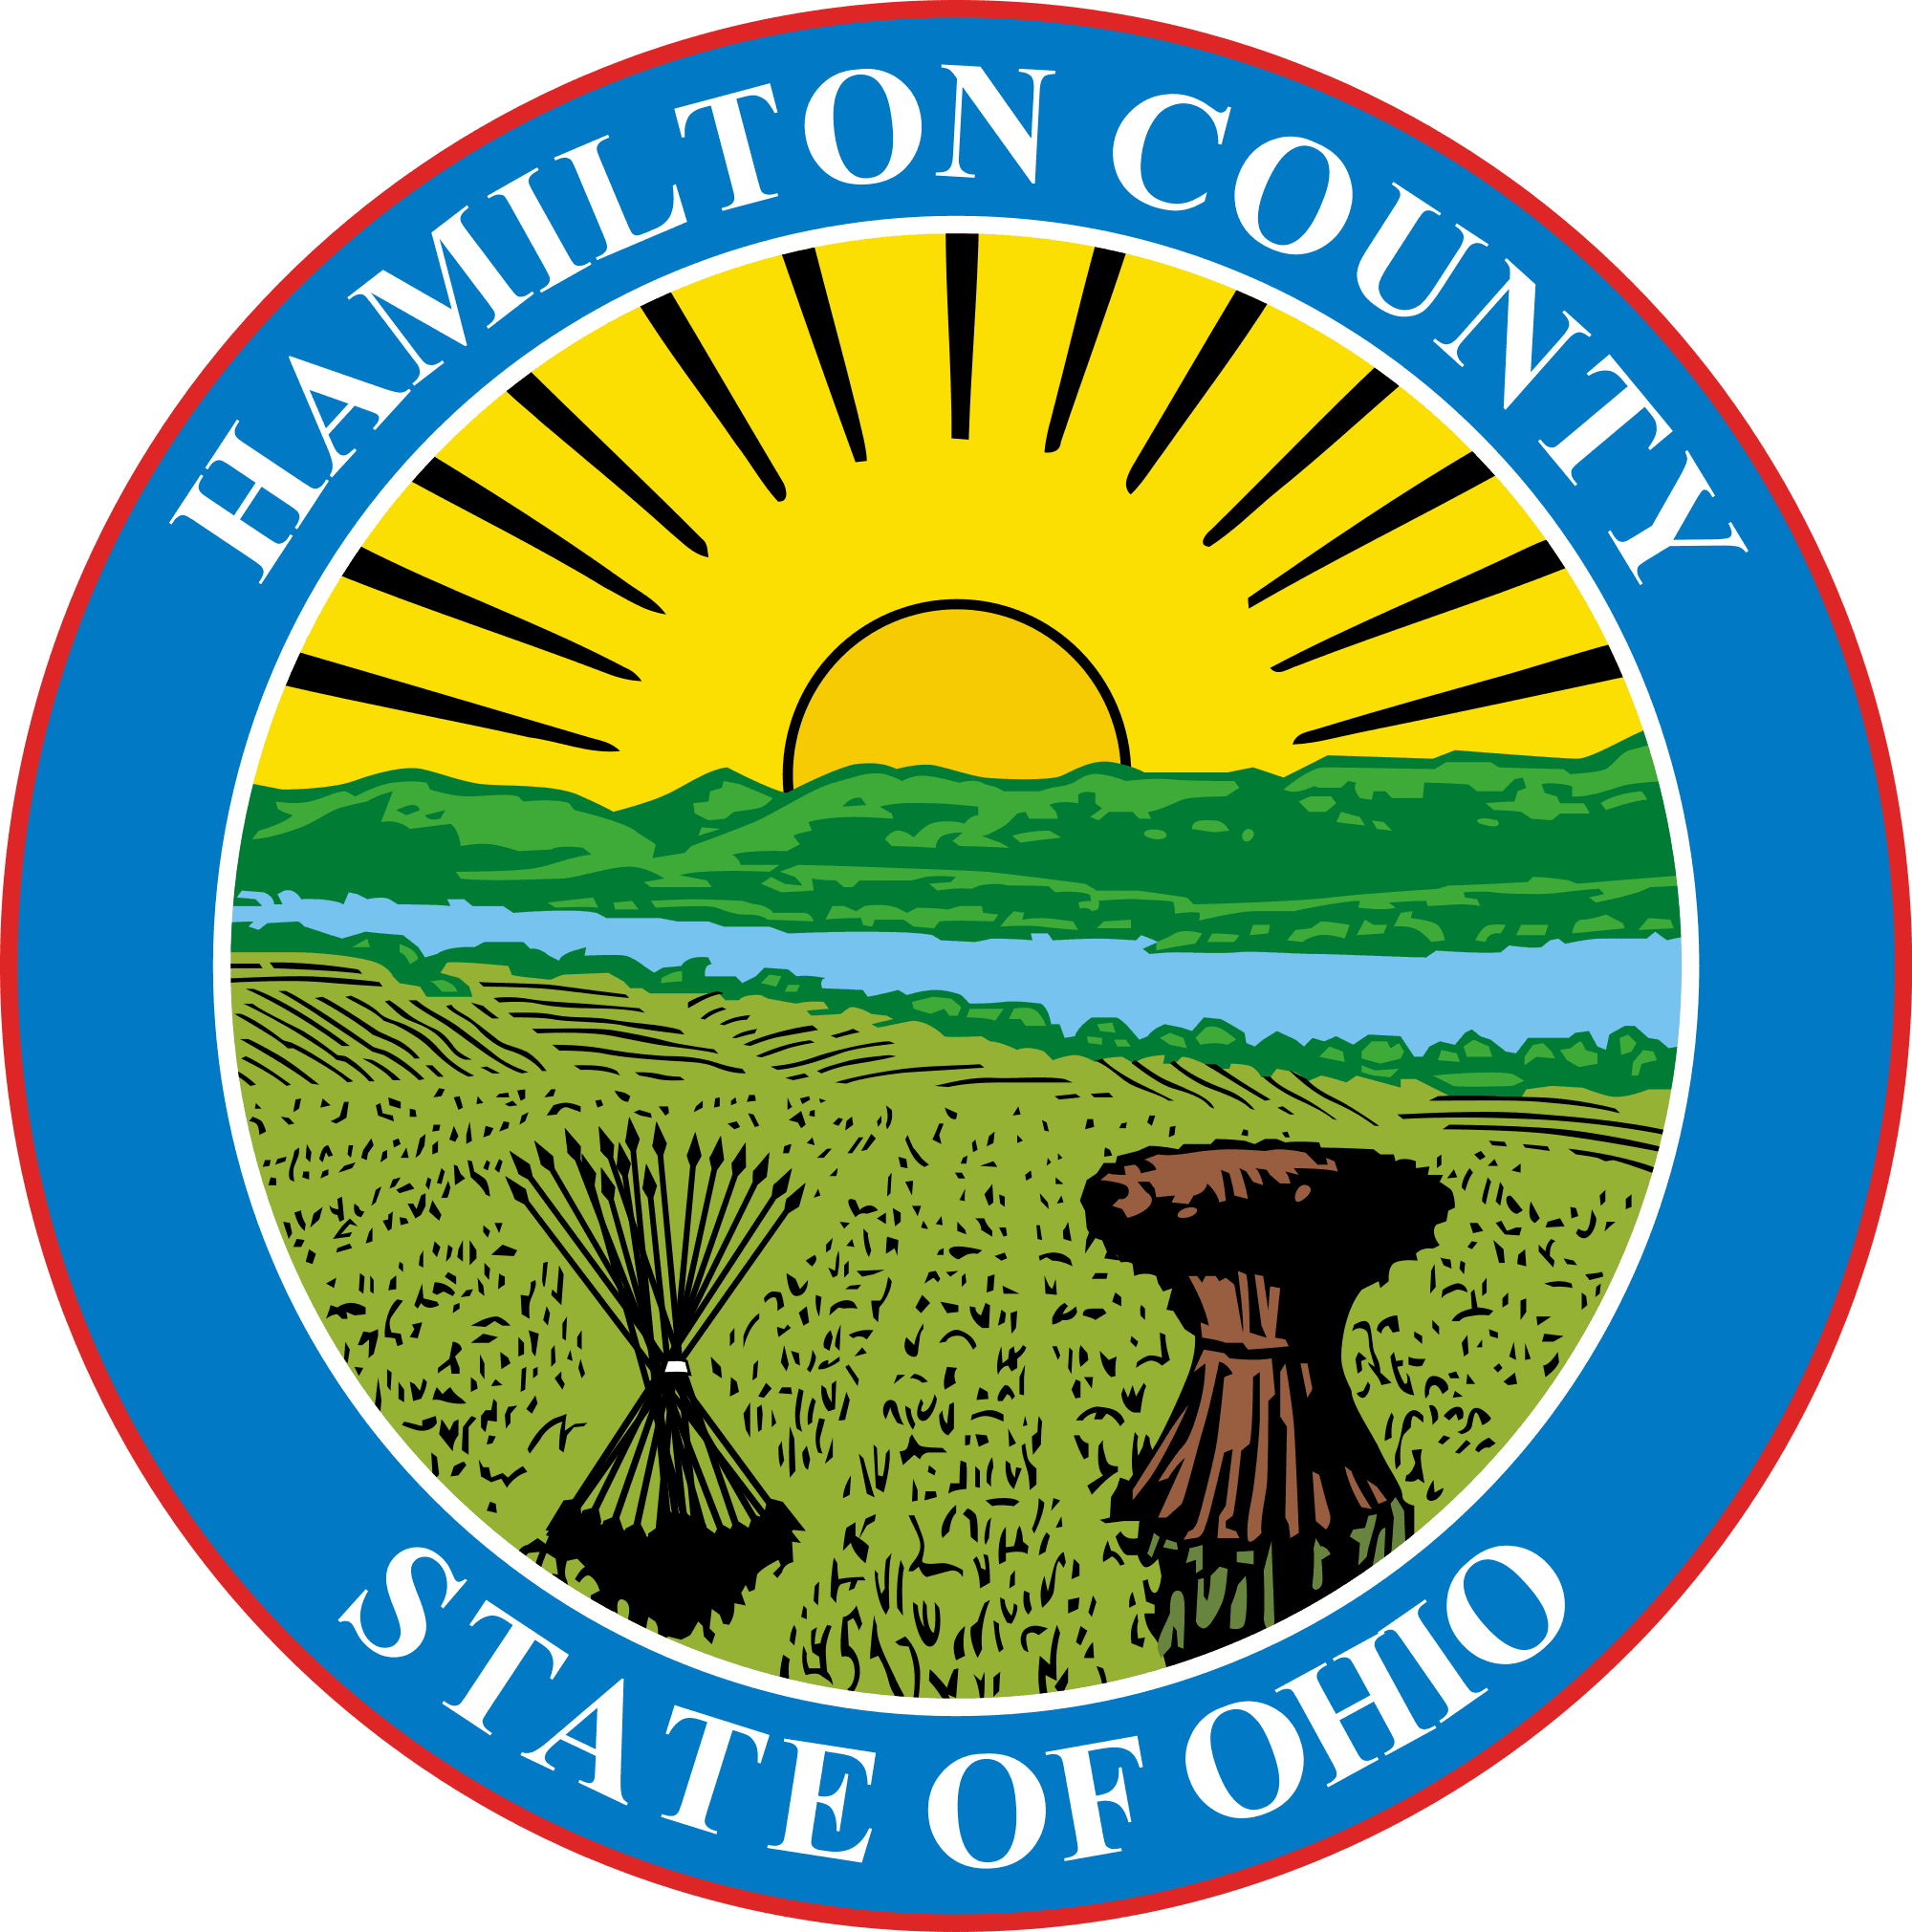 Seal_of_Hamilton_County,_Ohio.svg